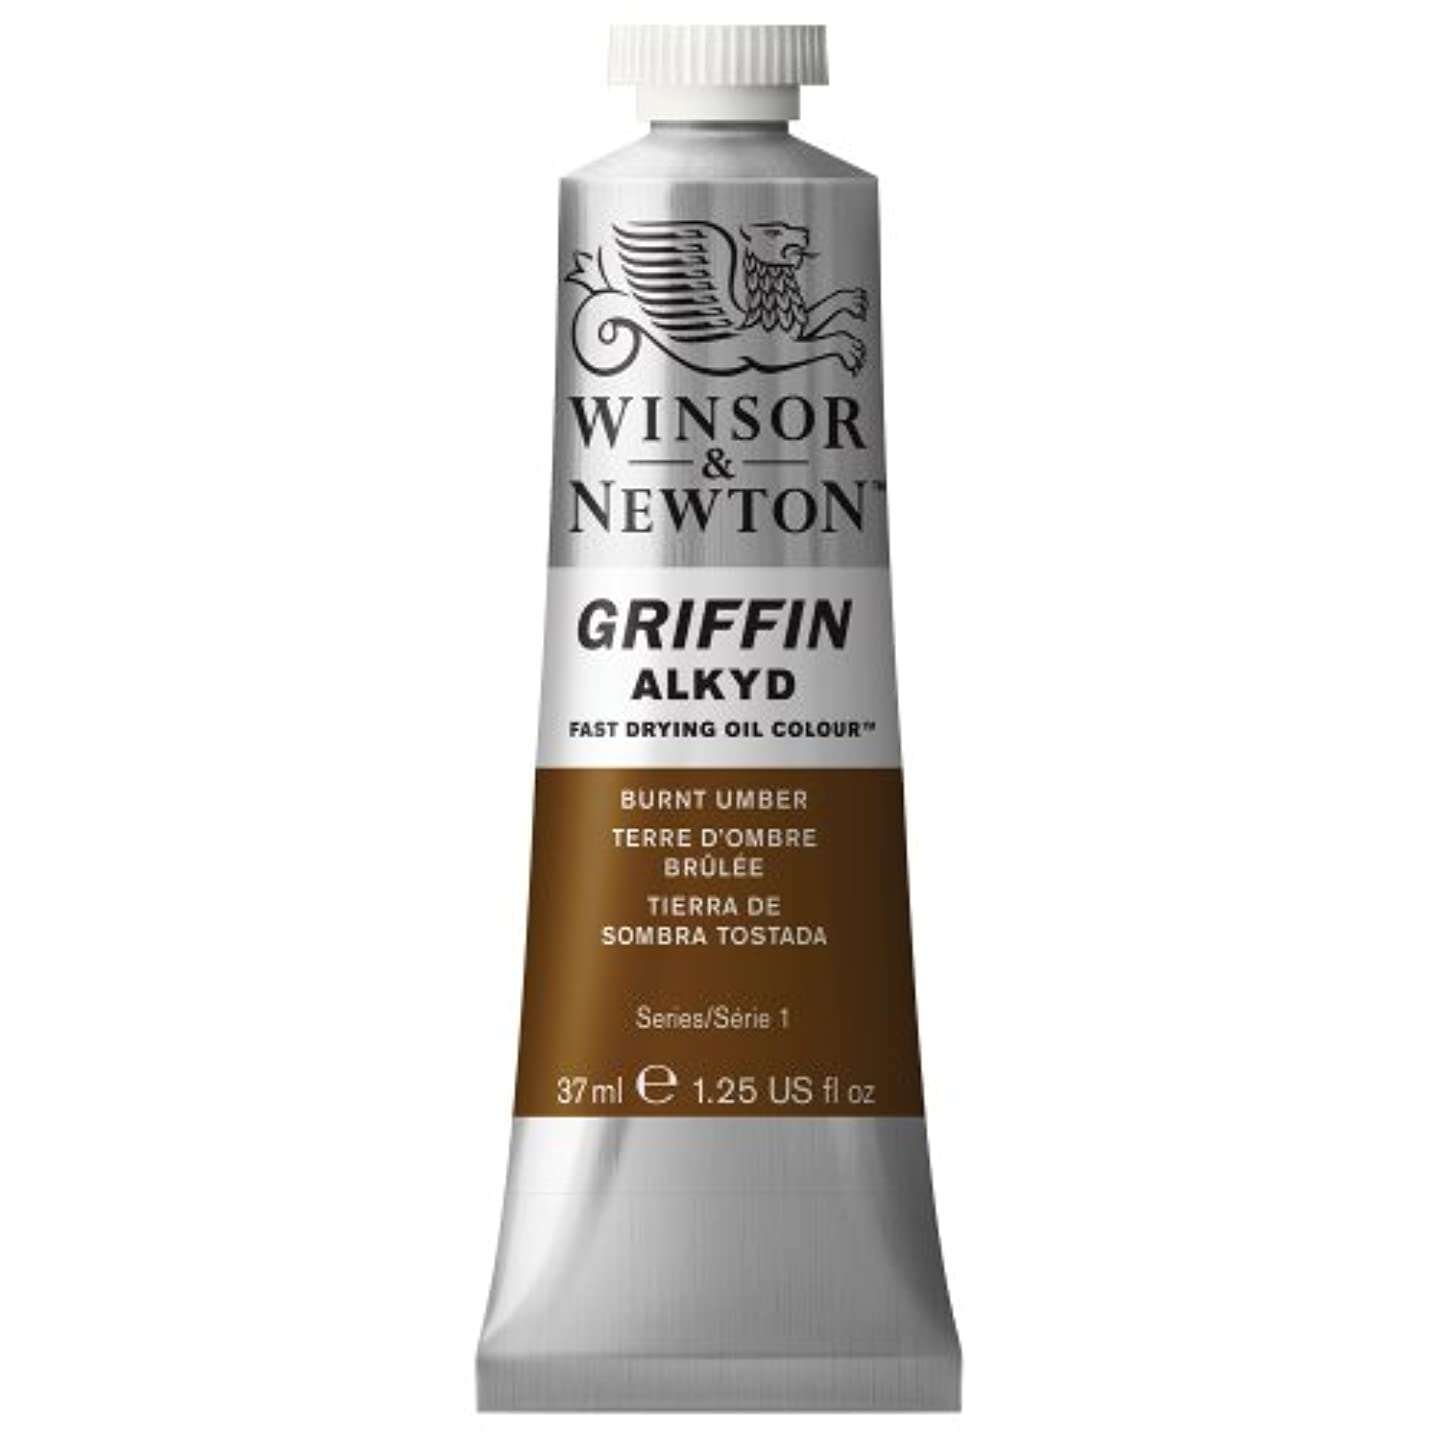 Winsor & Newton Griffin Alkyd Fast Drying Oil Colour Paint, 37ml tube, Burnt Umber